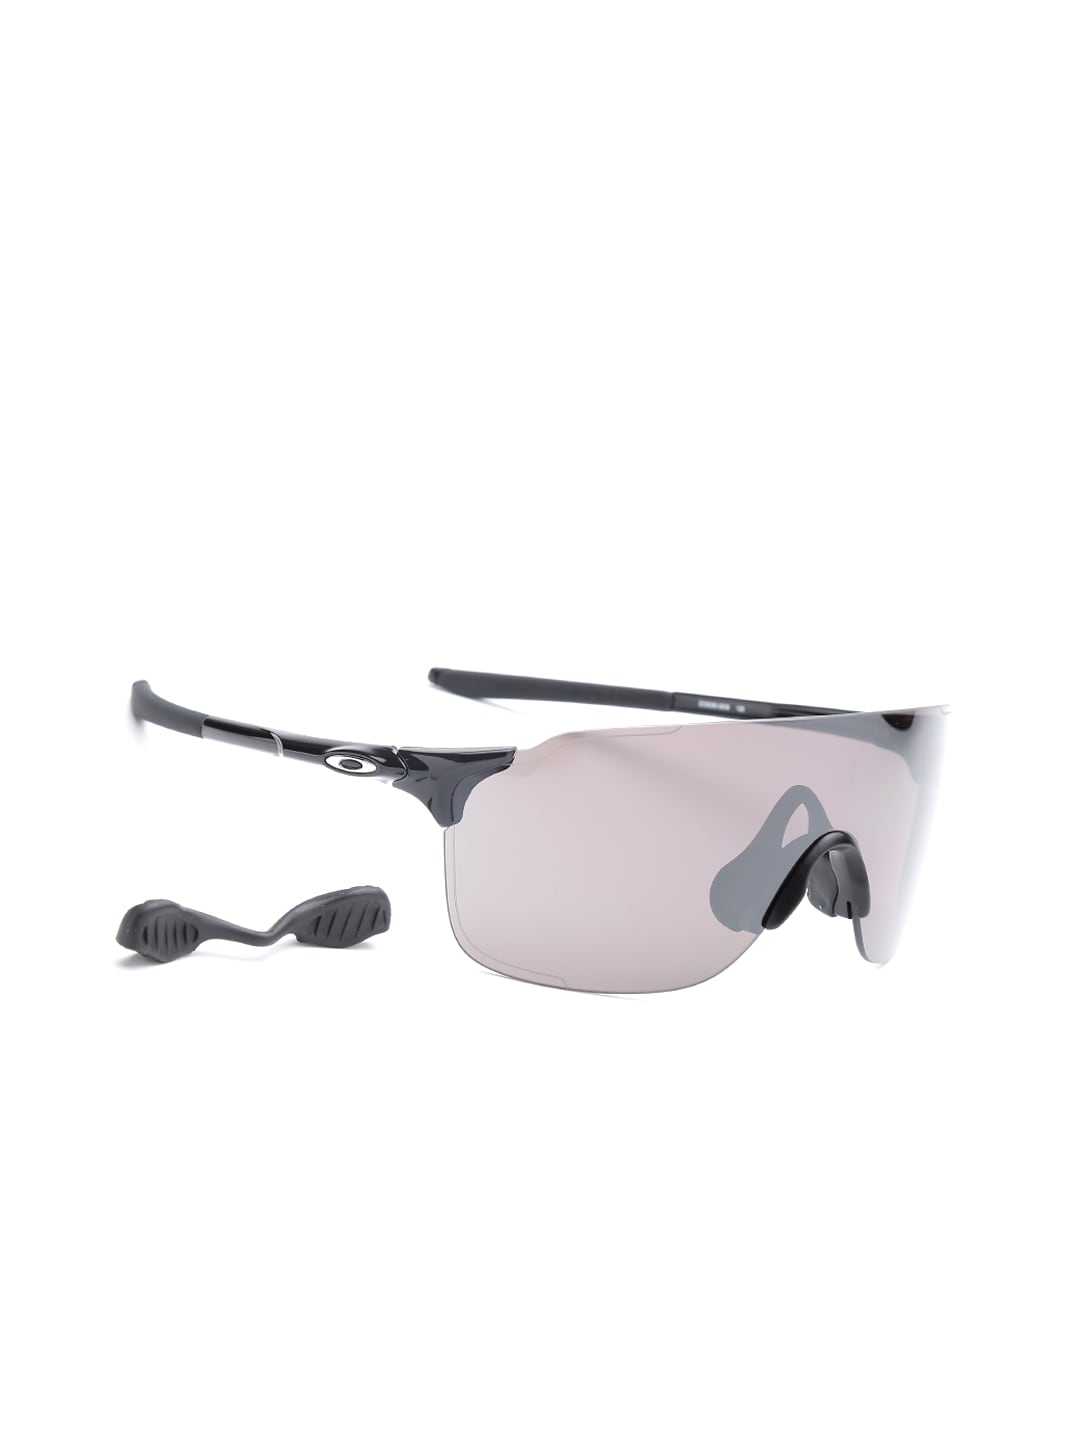 c563dec5dc Shield Sunglasses - Buy Shield Sunglasses online in India